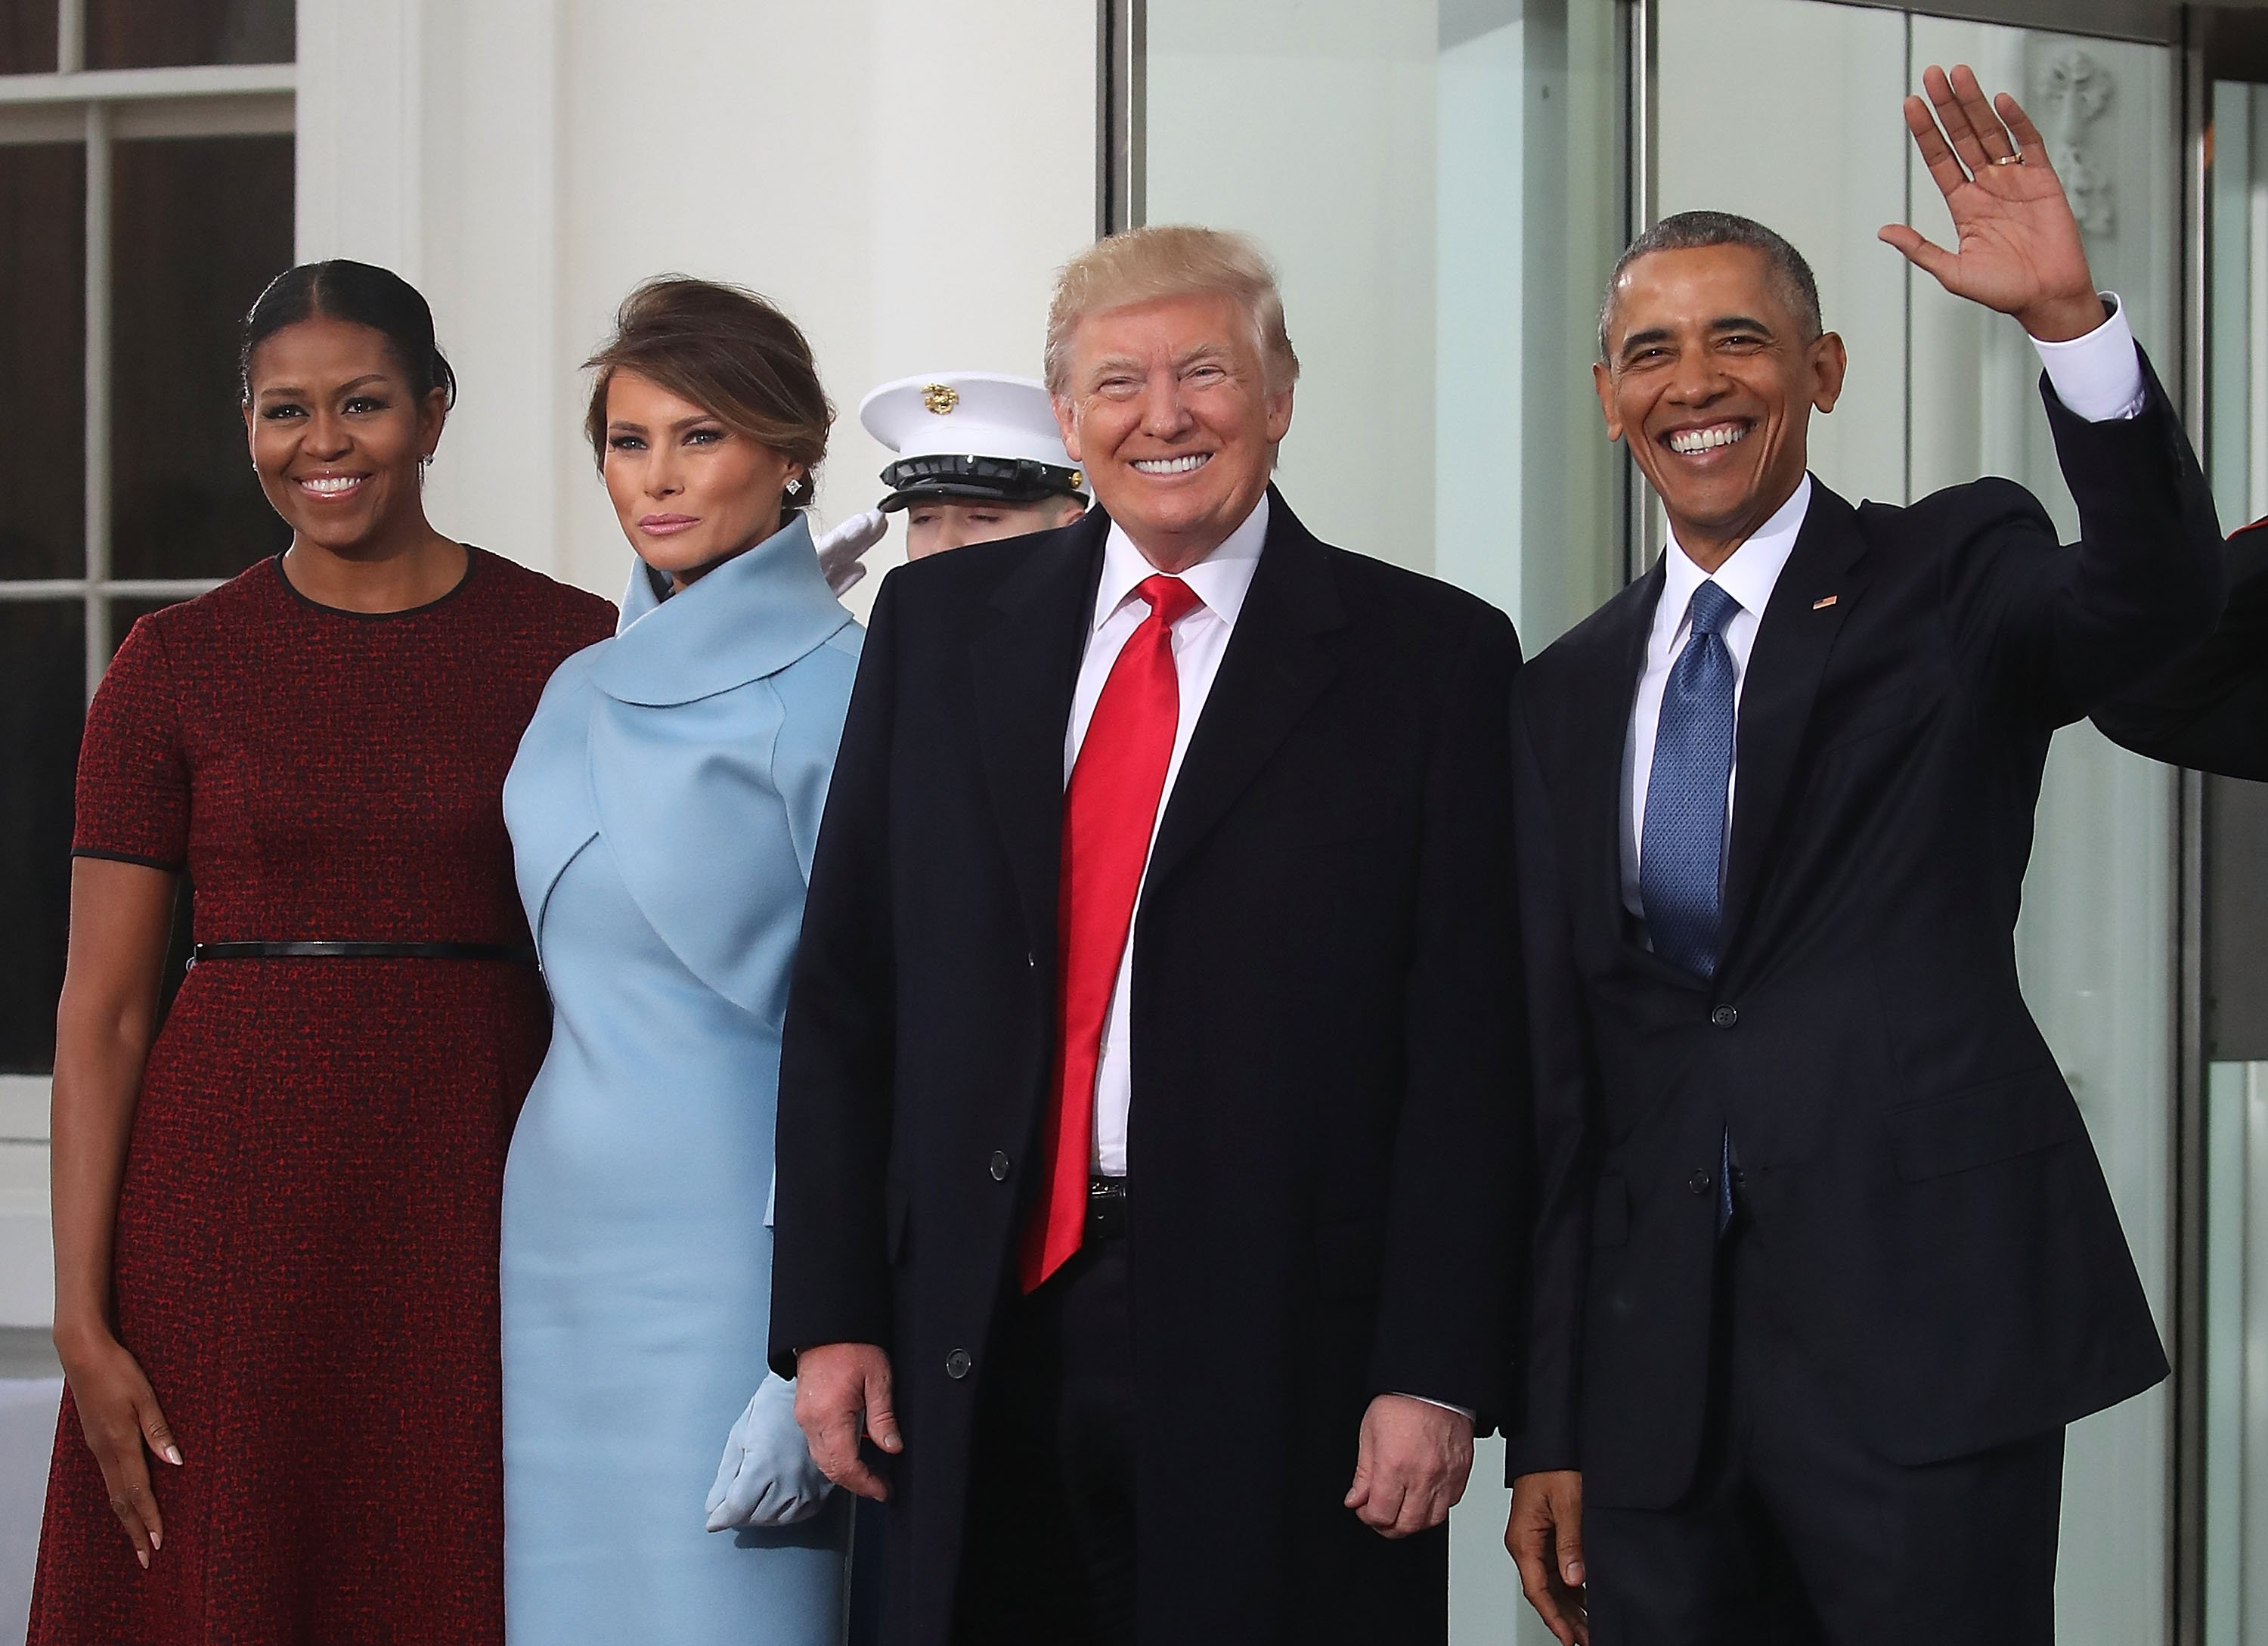 Donald Trump ,and his wife Melania Trump  are greeted by President Barack Obama and his wife first lady Michelle Obama, upon arriving at the White House on January 20, 2017. | Photo: GettyImages